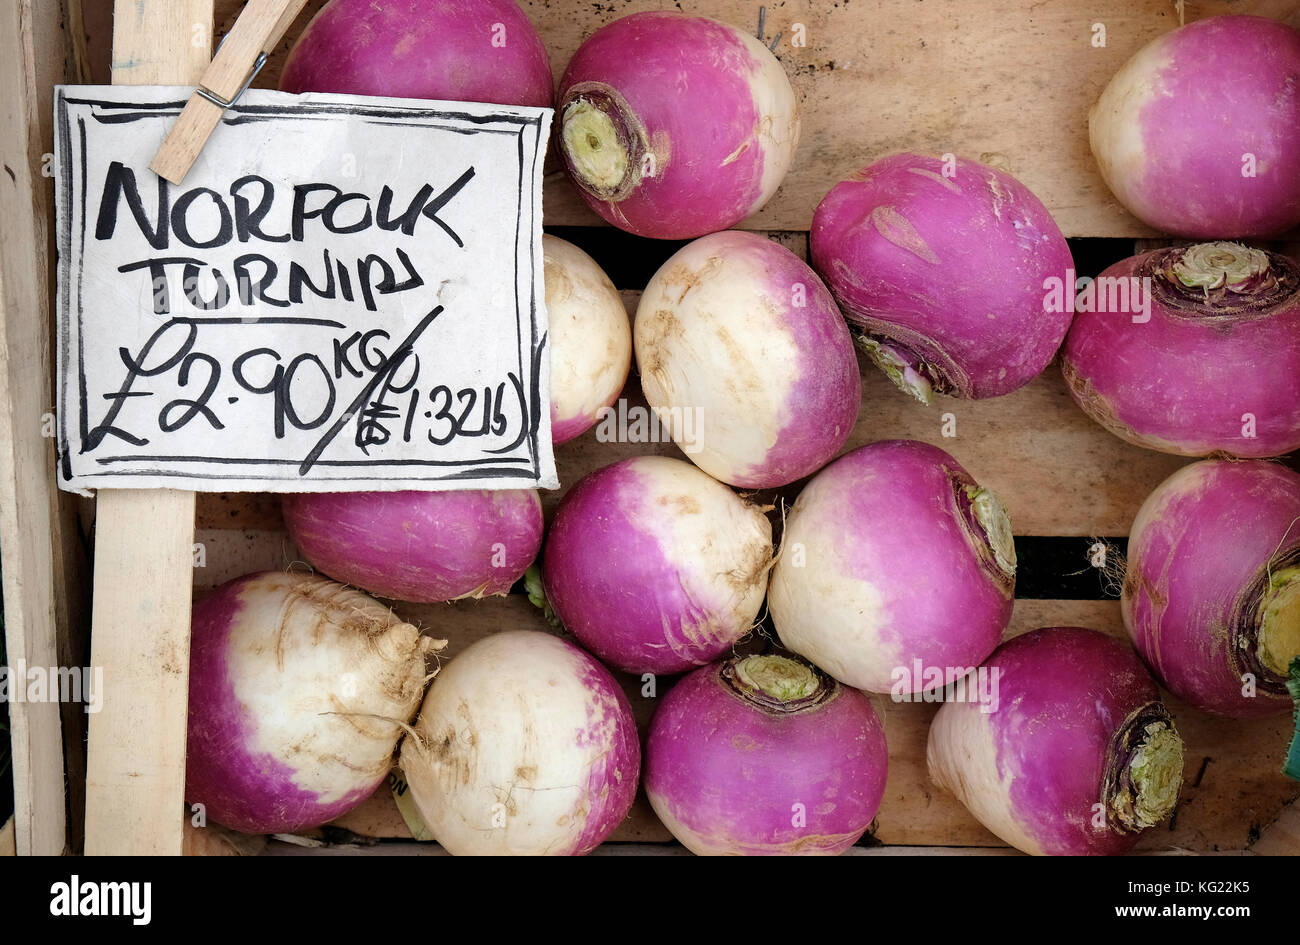 norfolk turnips in wooden tray outside greengrocers shop - Stock Image